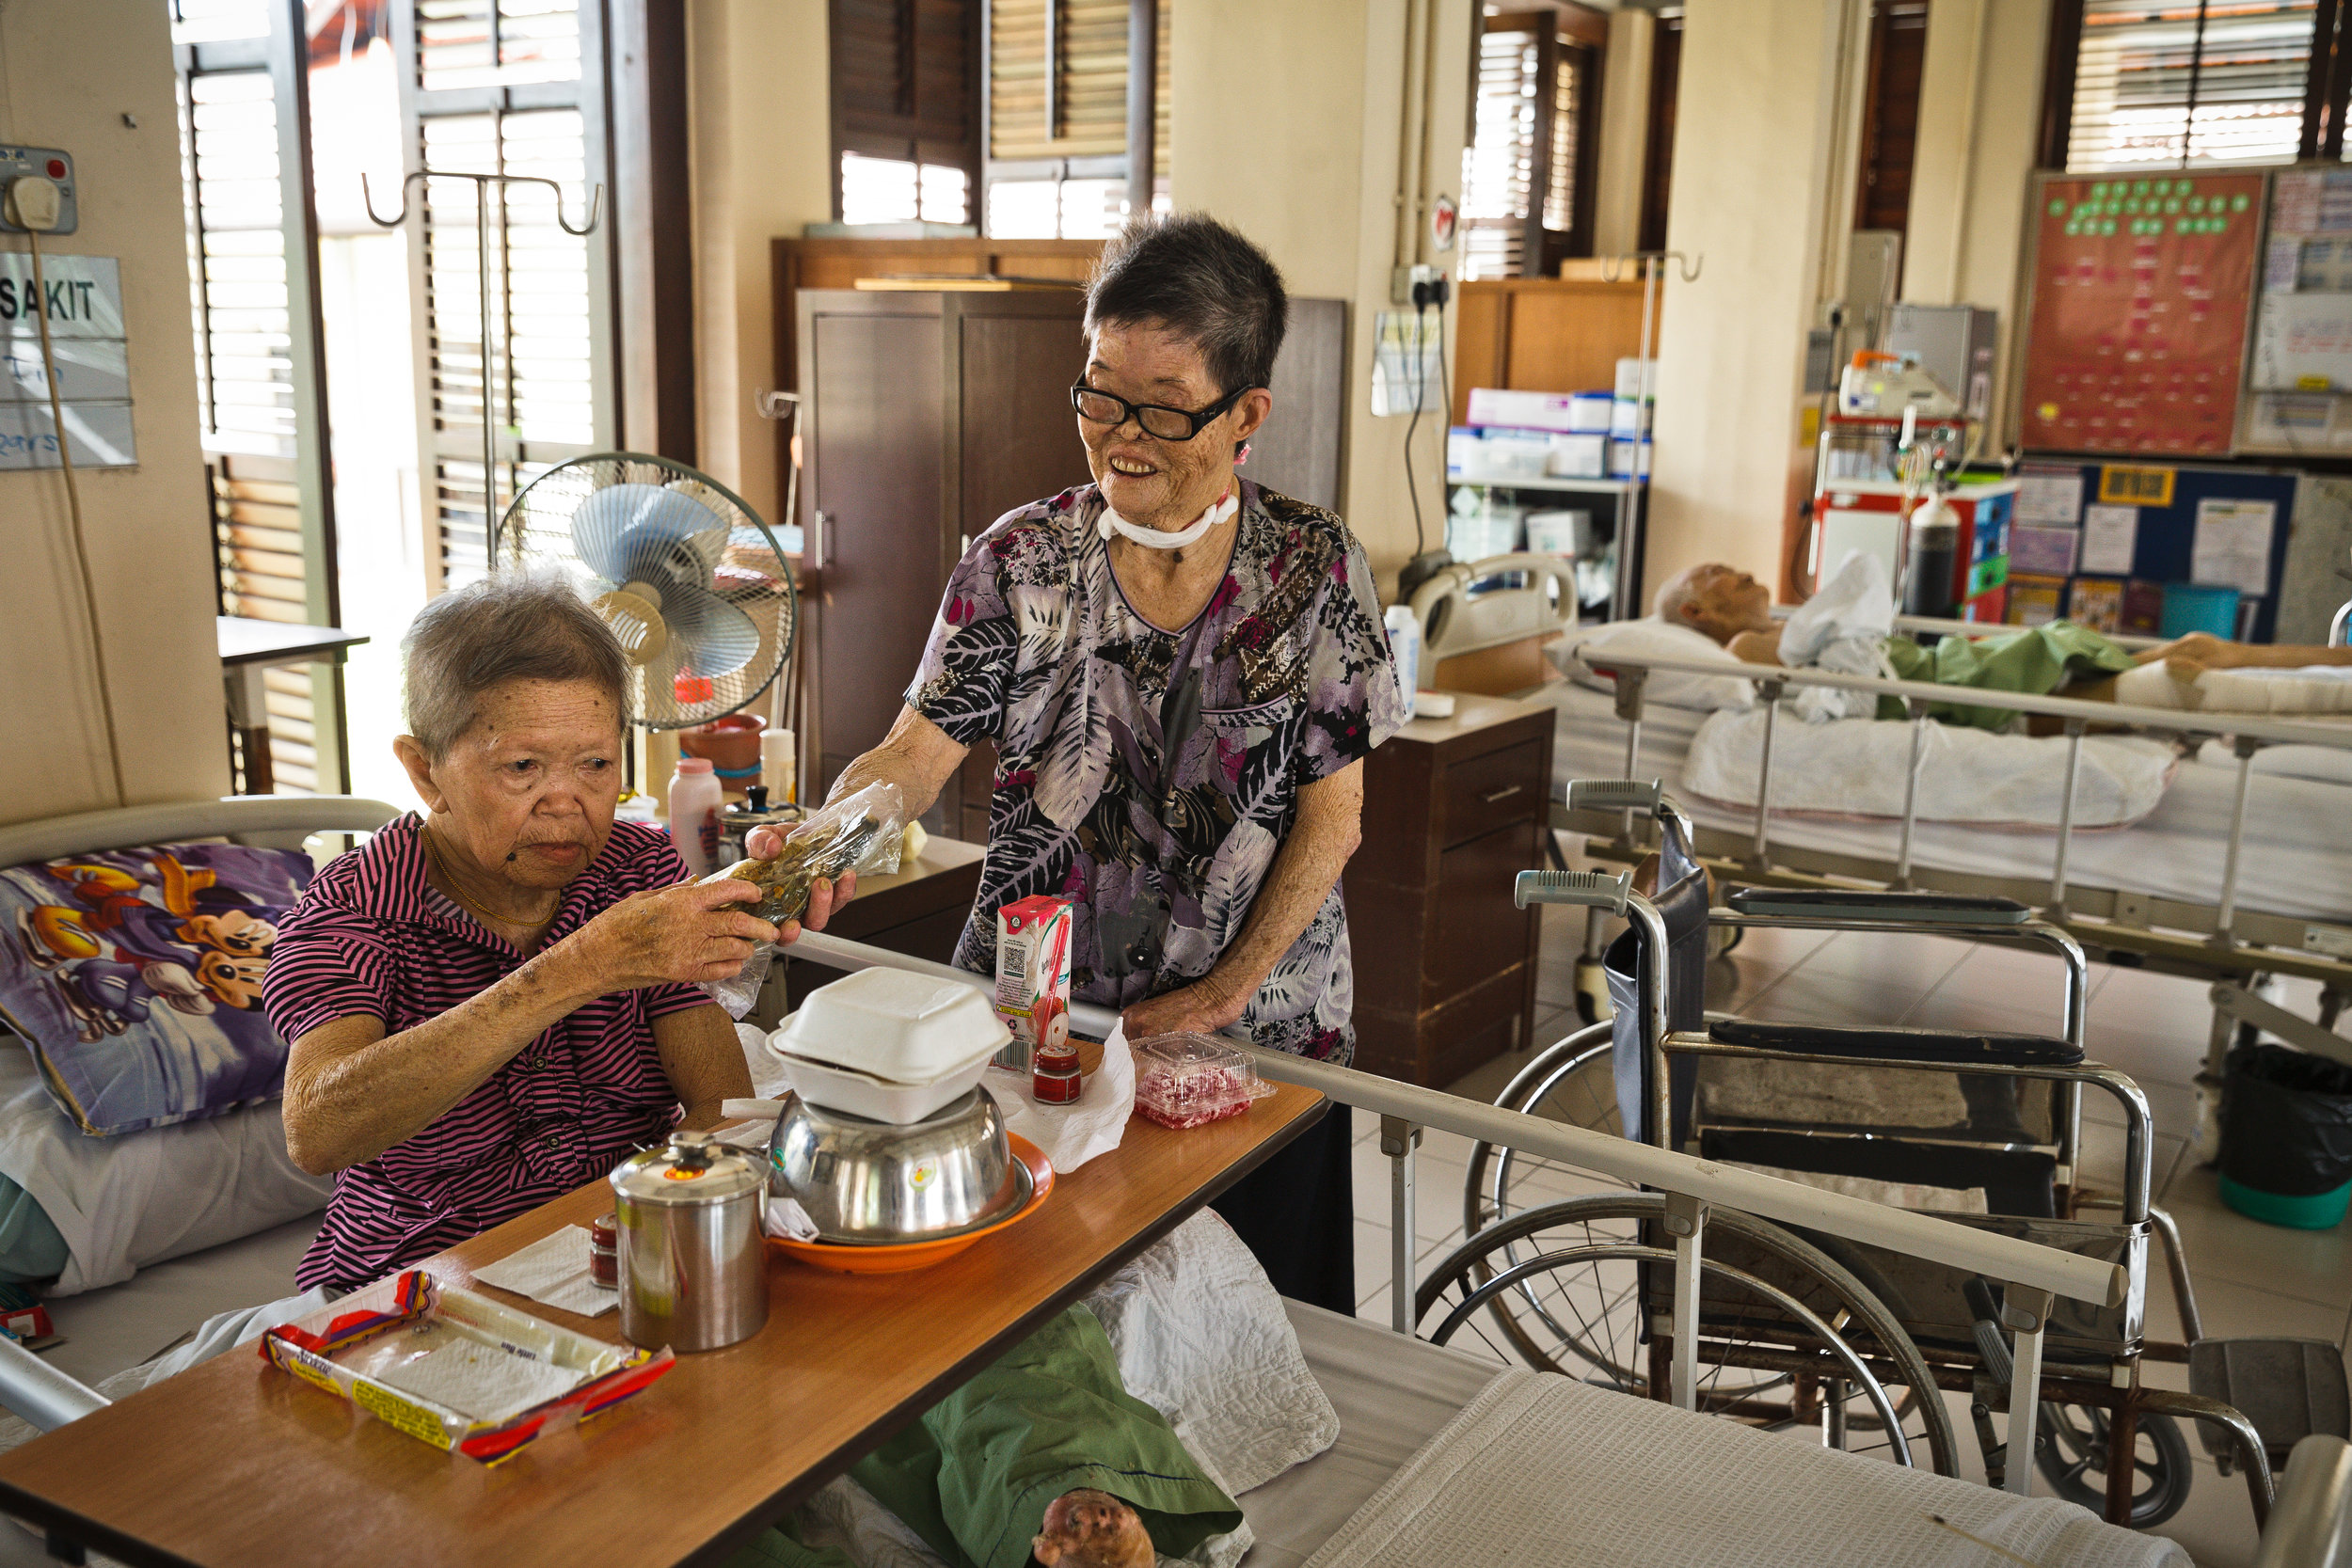 Heng enjoys helping the other patients in the ward. (photo by Mango Loke)